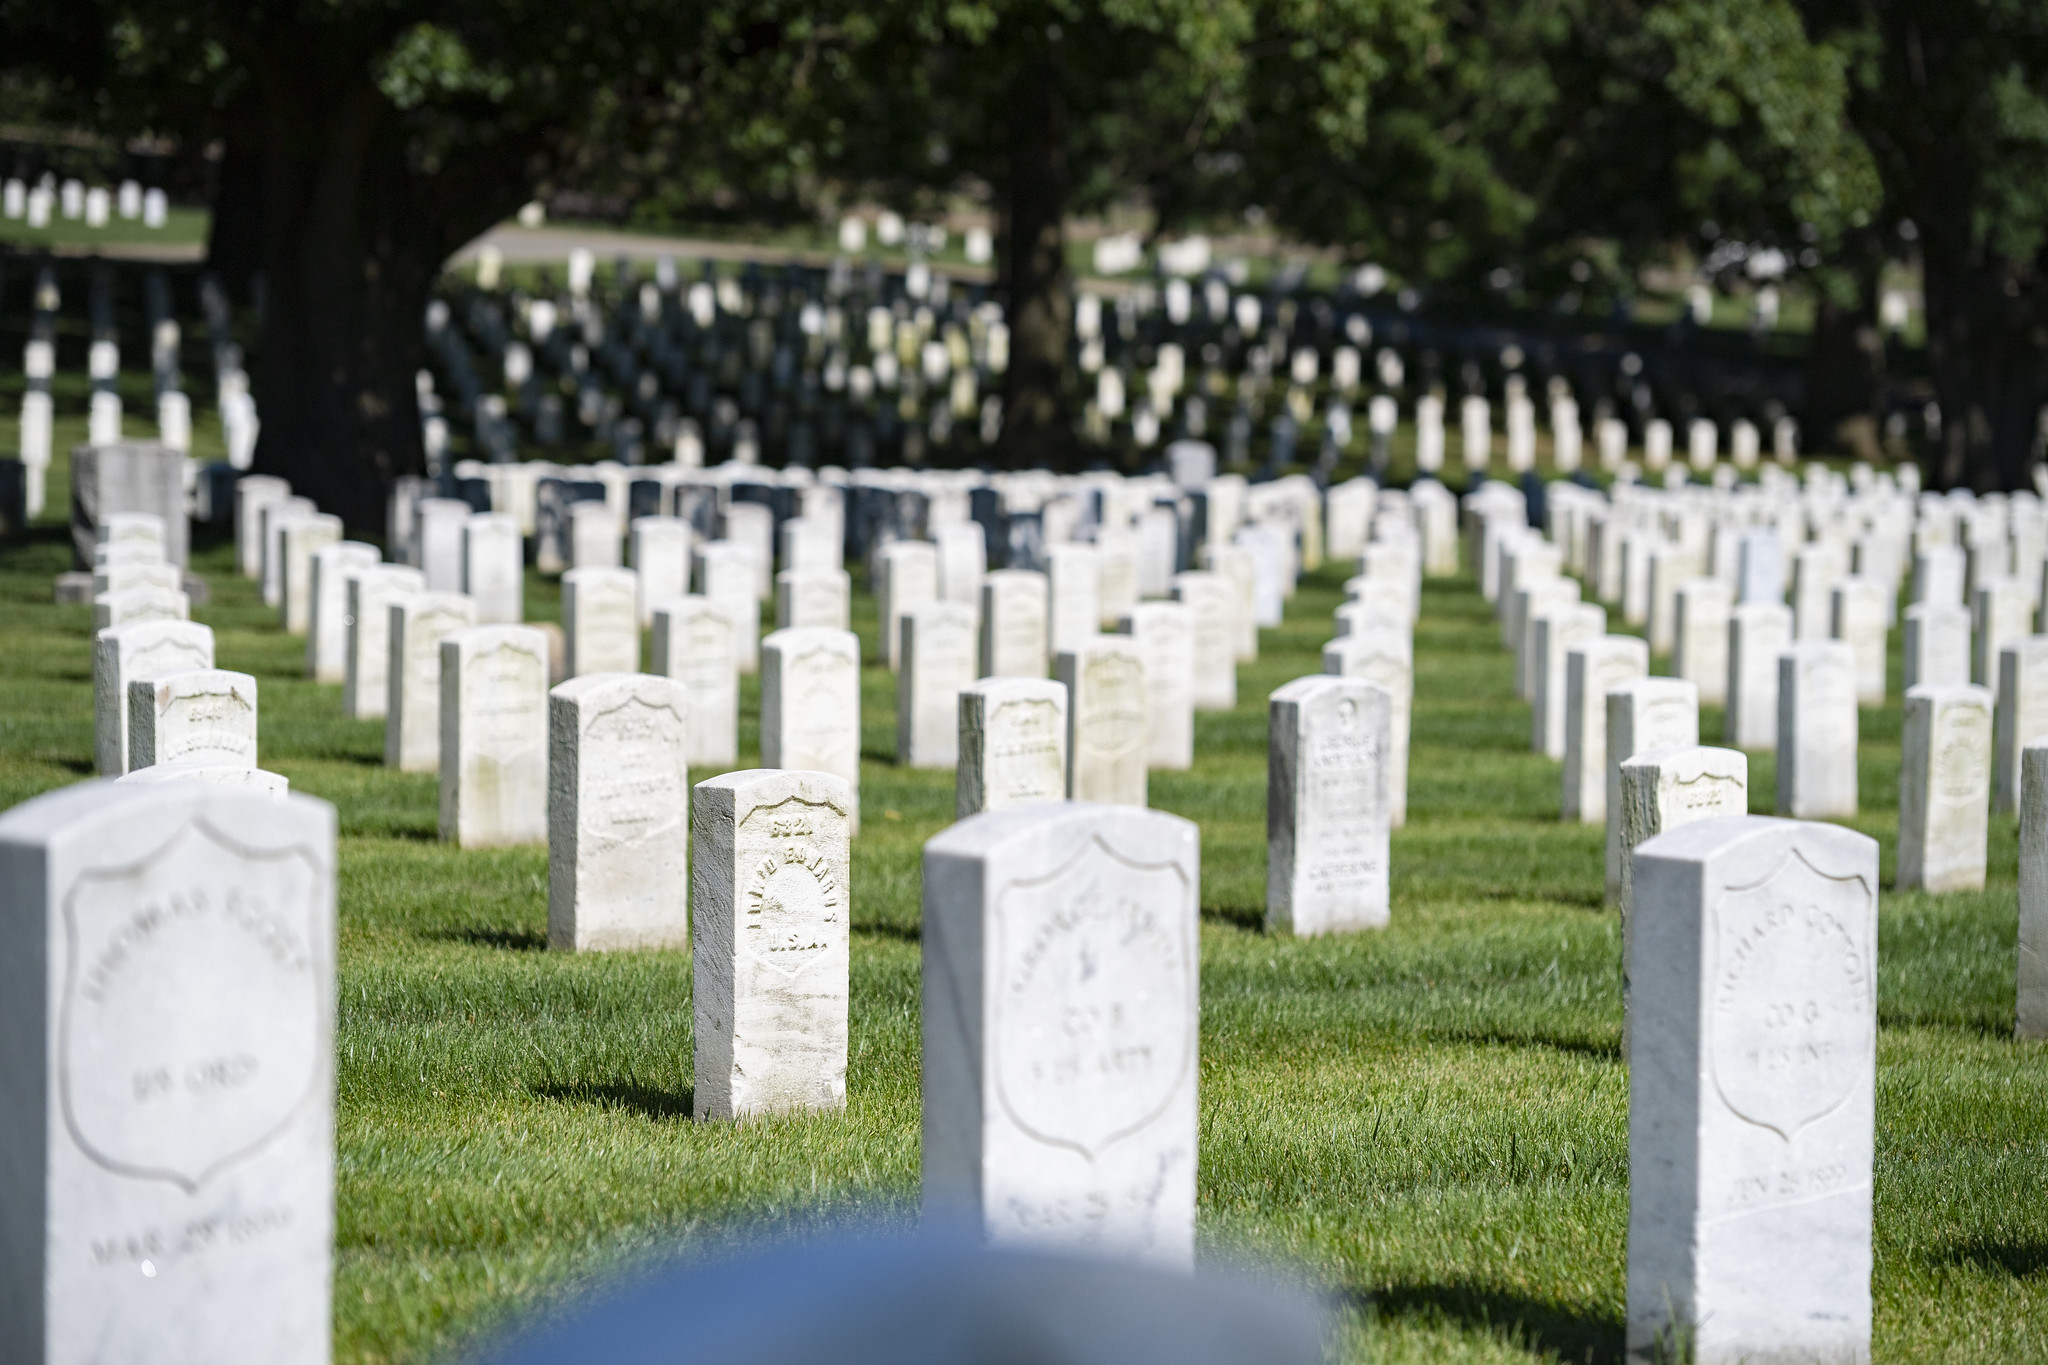 soldiers and airmens headstones